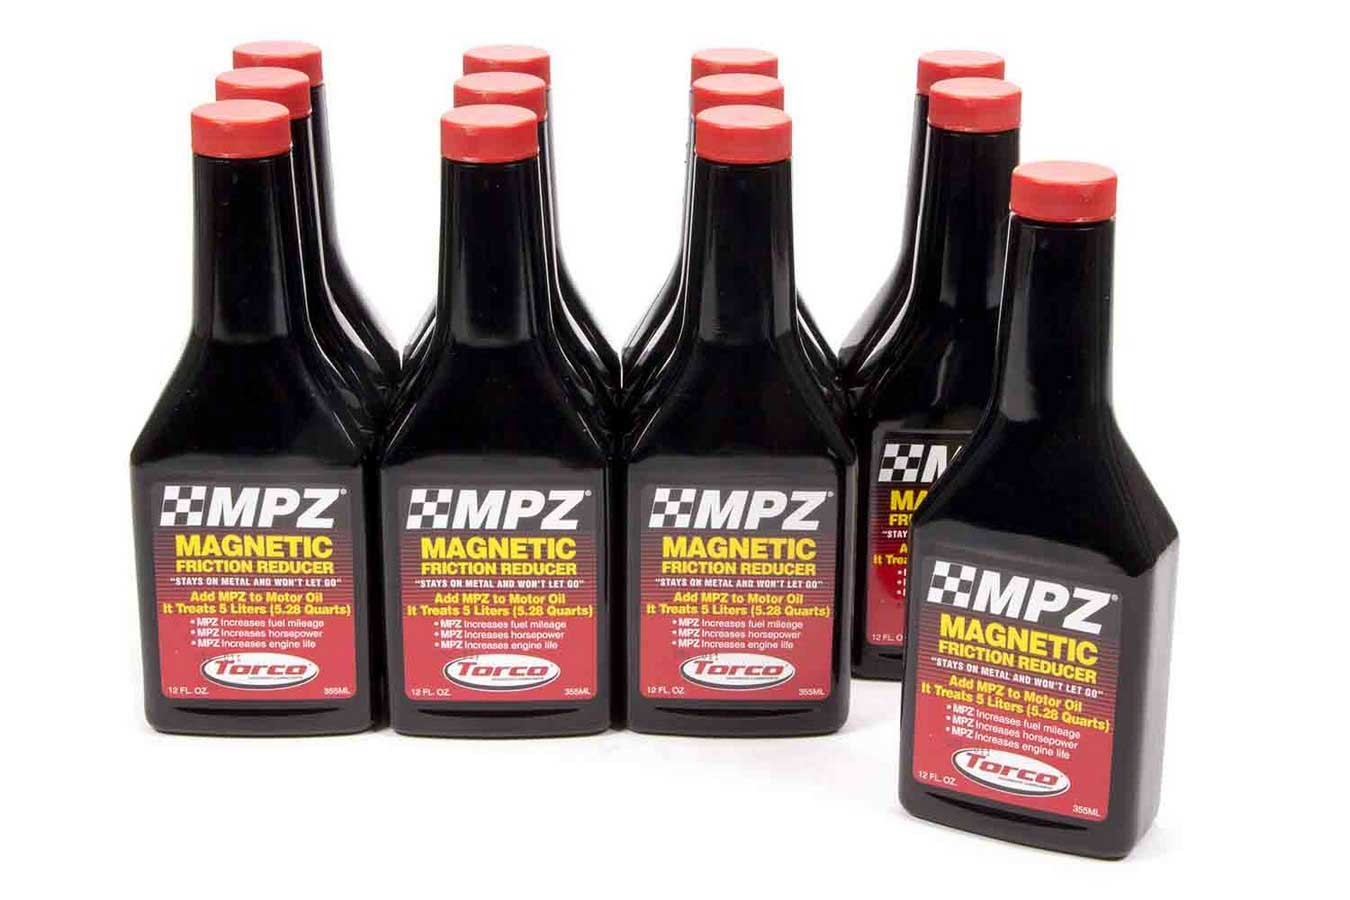 MPZ Magnetic Friction Reducer Case/12-12oz